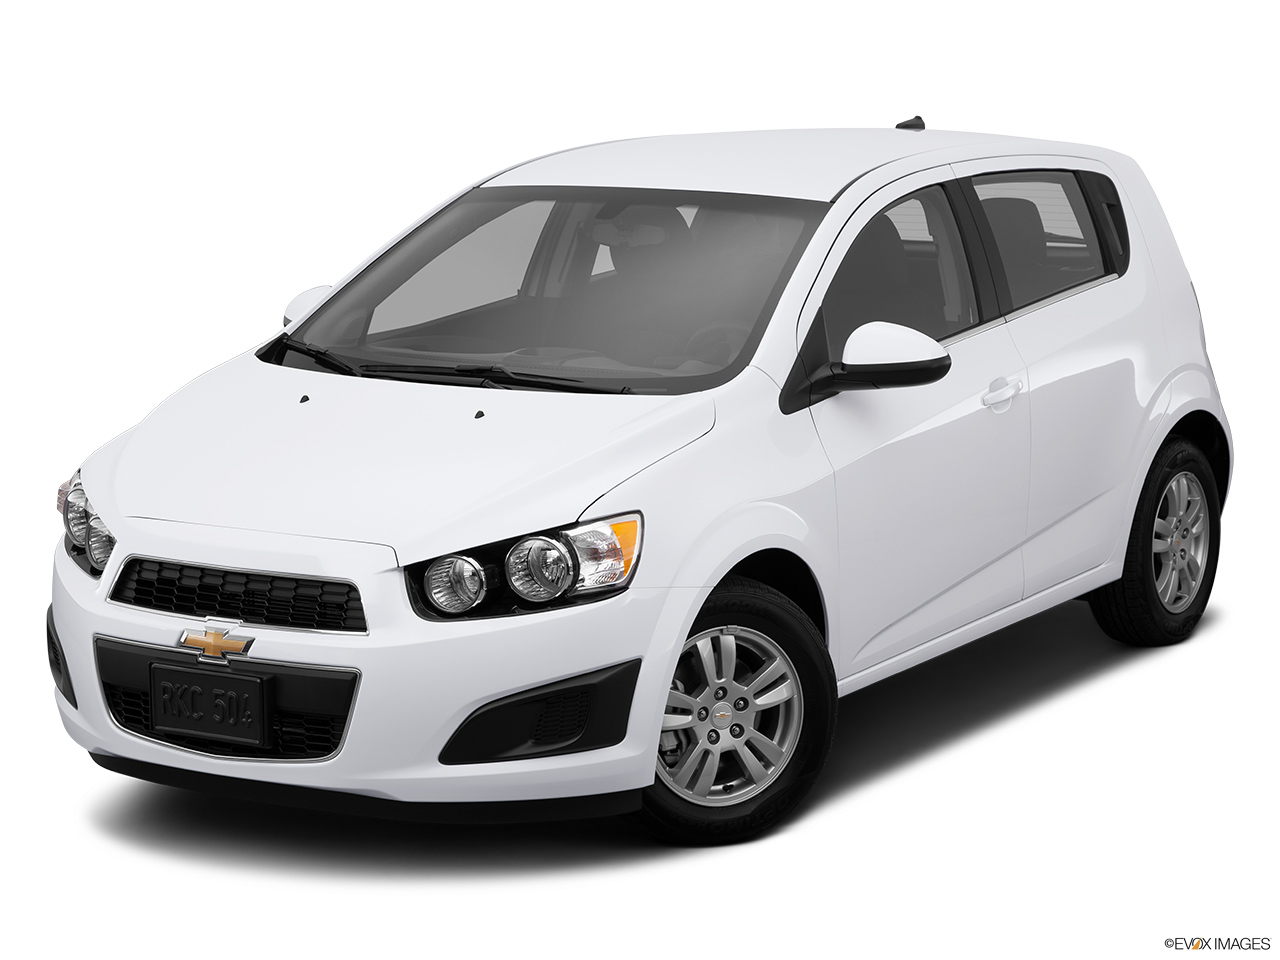 2014 chevrolet sonic 5dr hatchback manual ls front angle view. Cars Review. Best American Auto & Cars Review